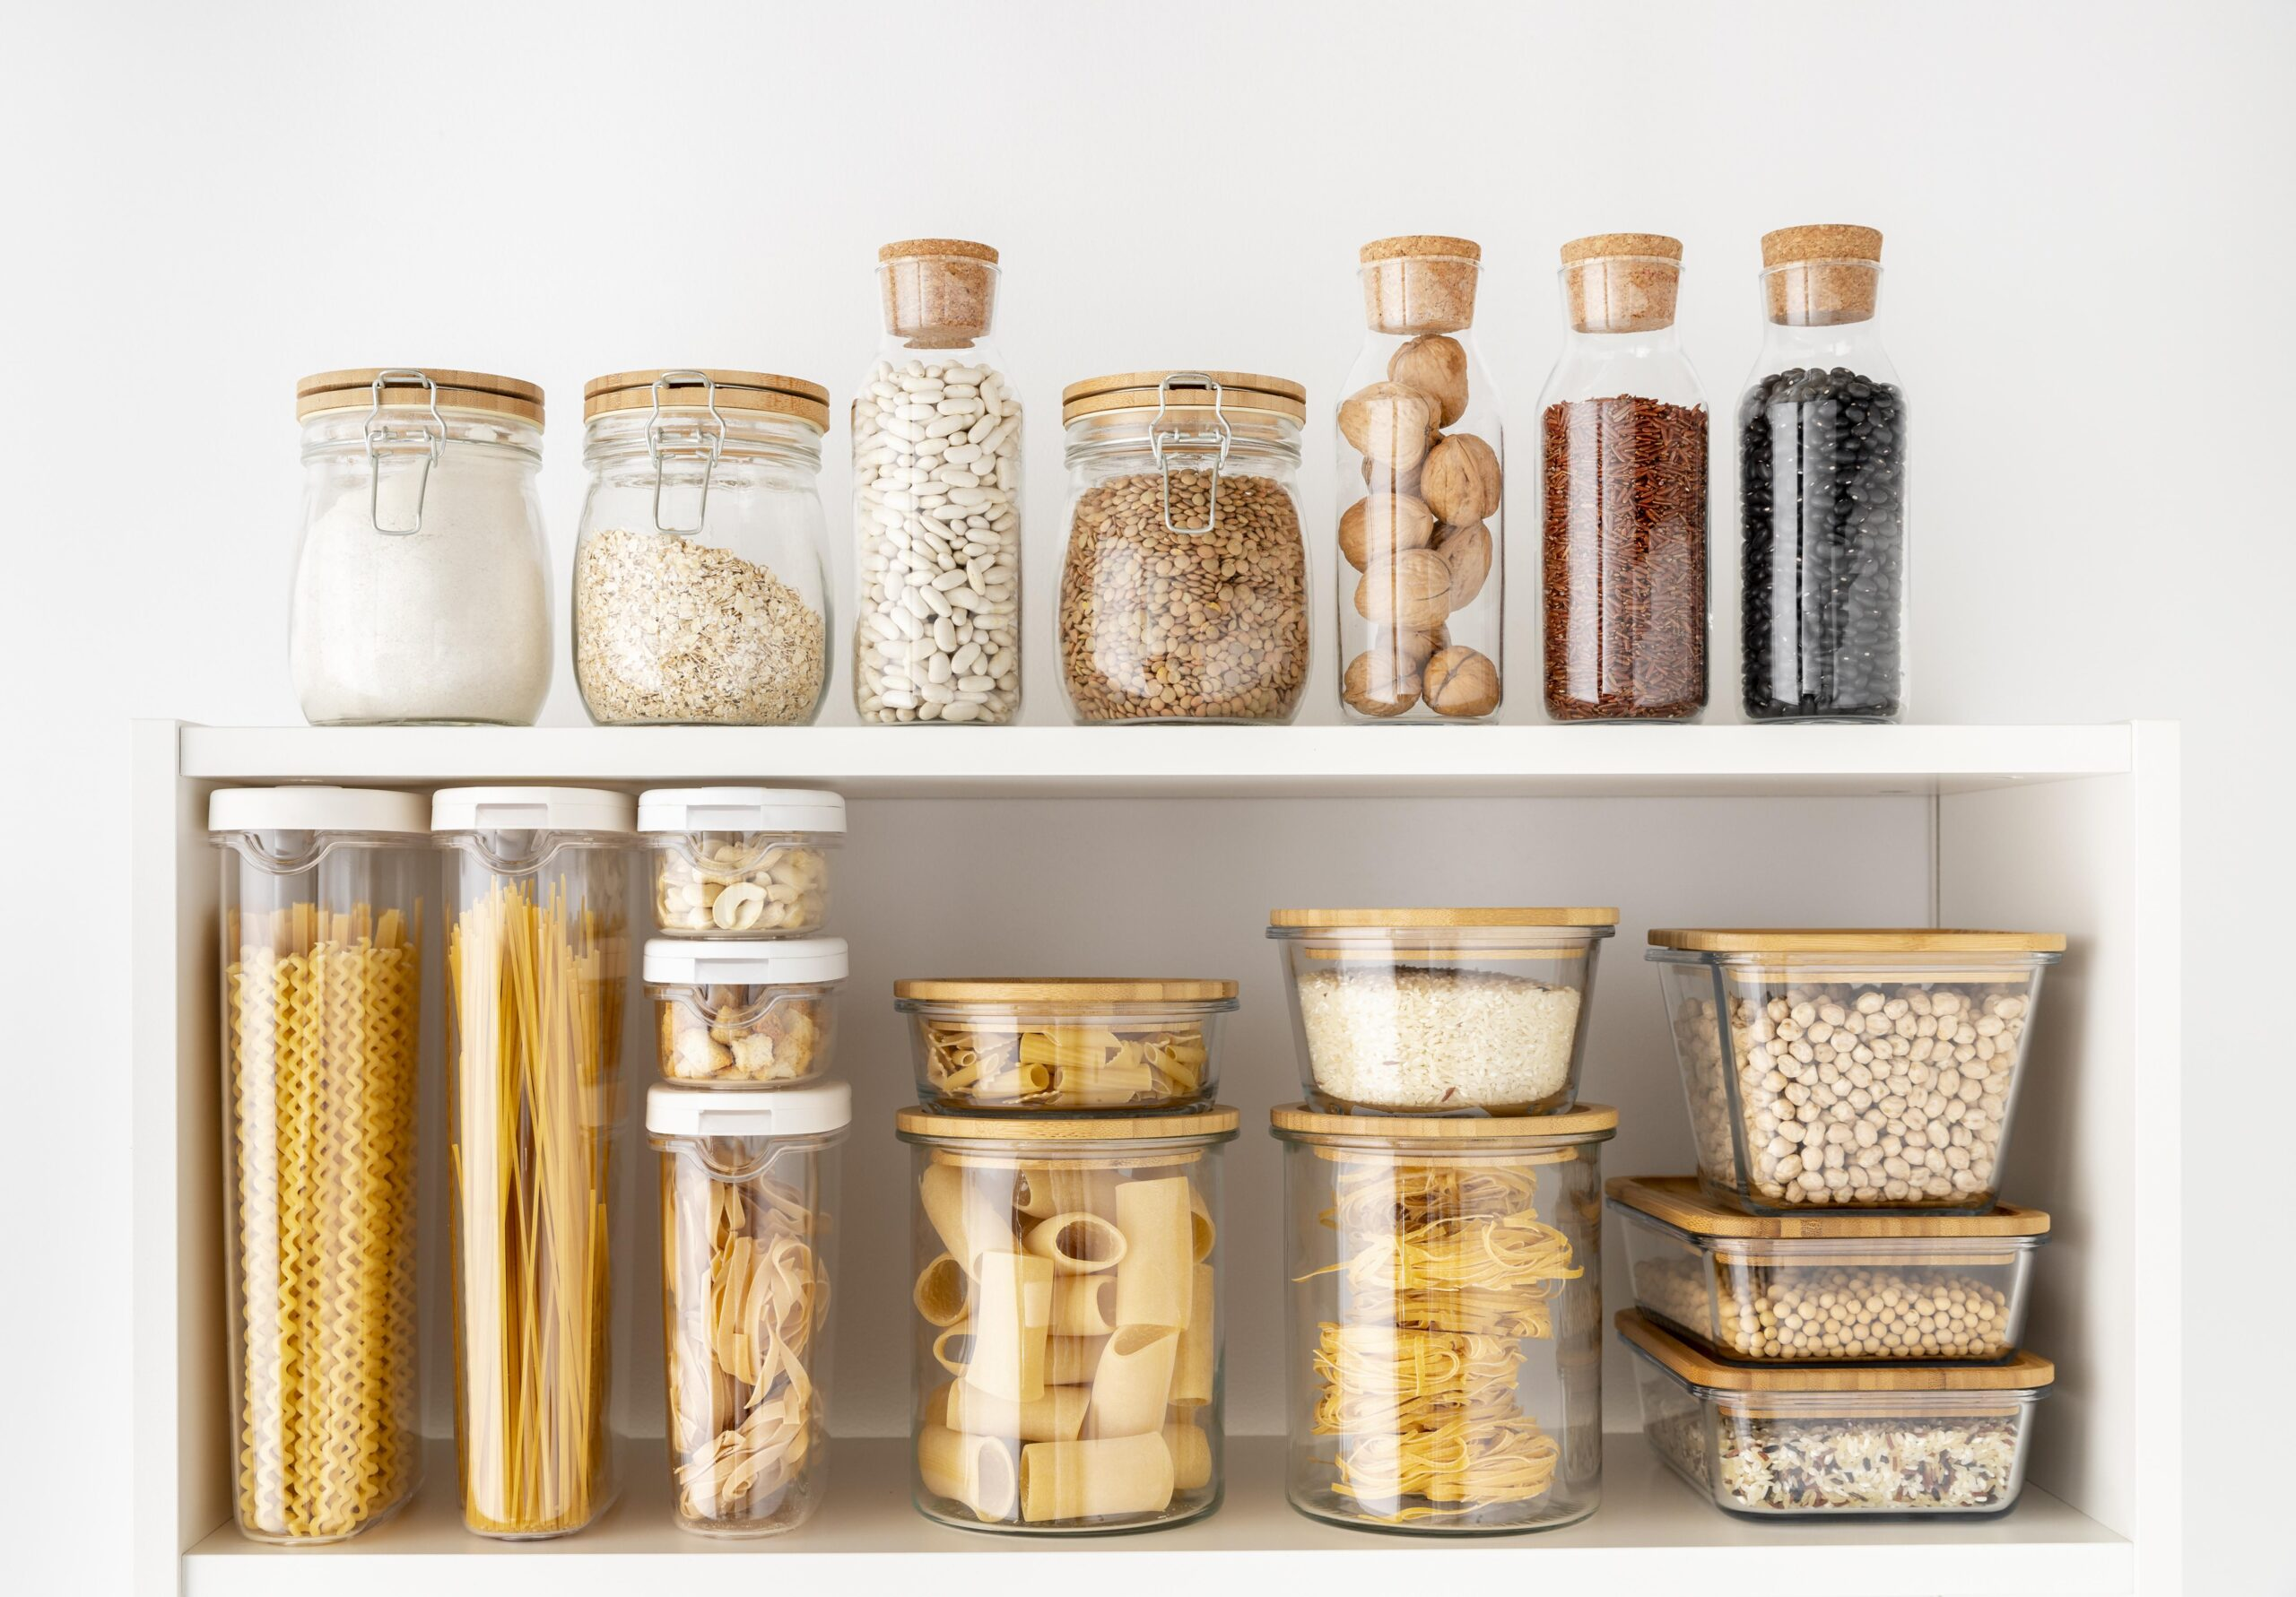 pairing up similar storage containers in organized layout on shelf in kitchen pantry